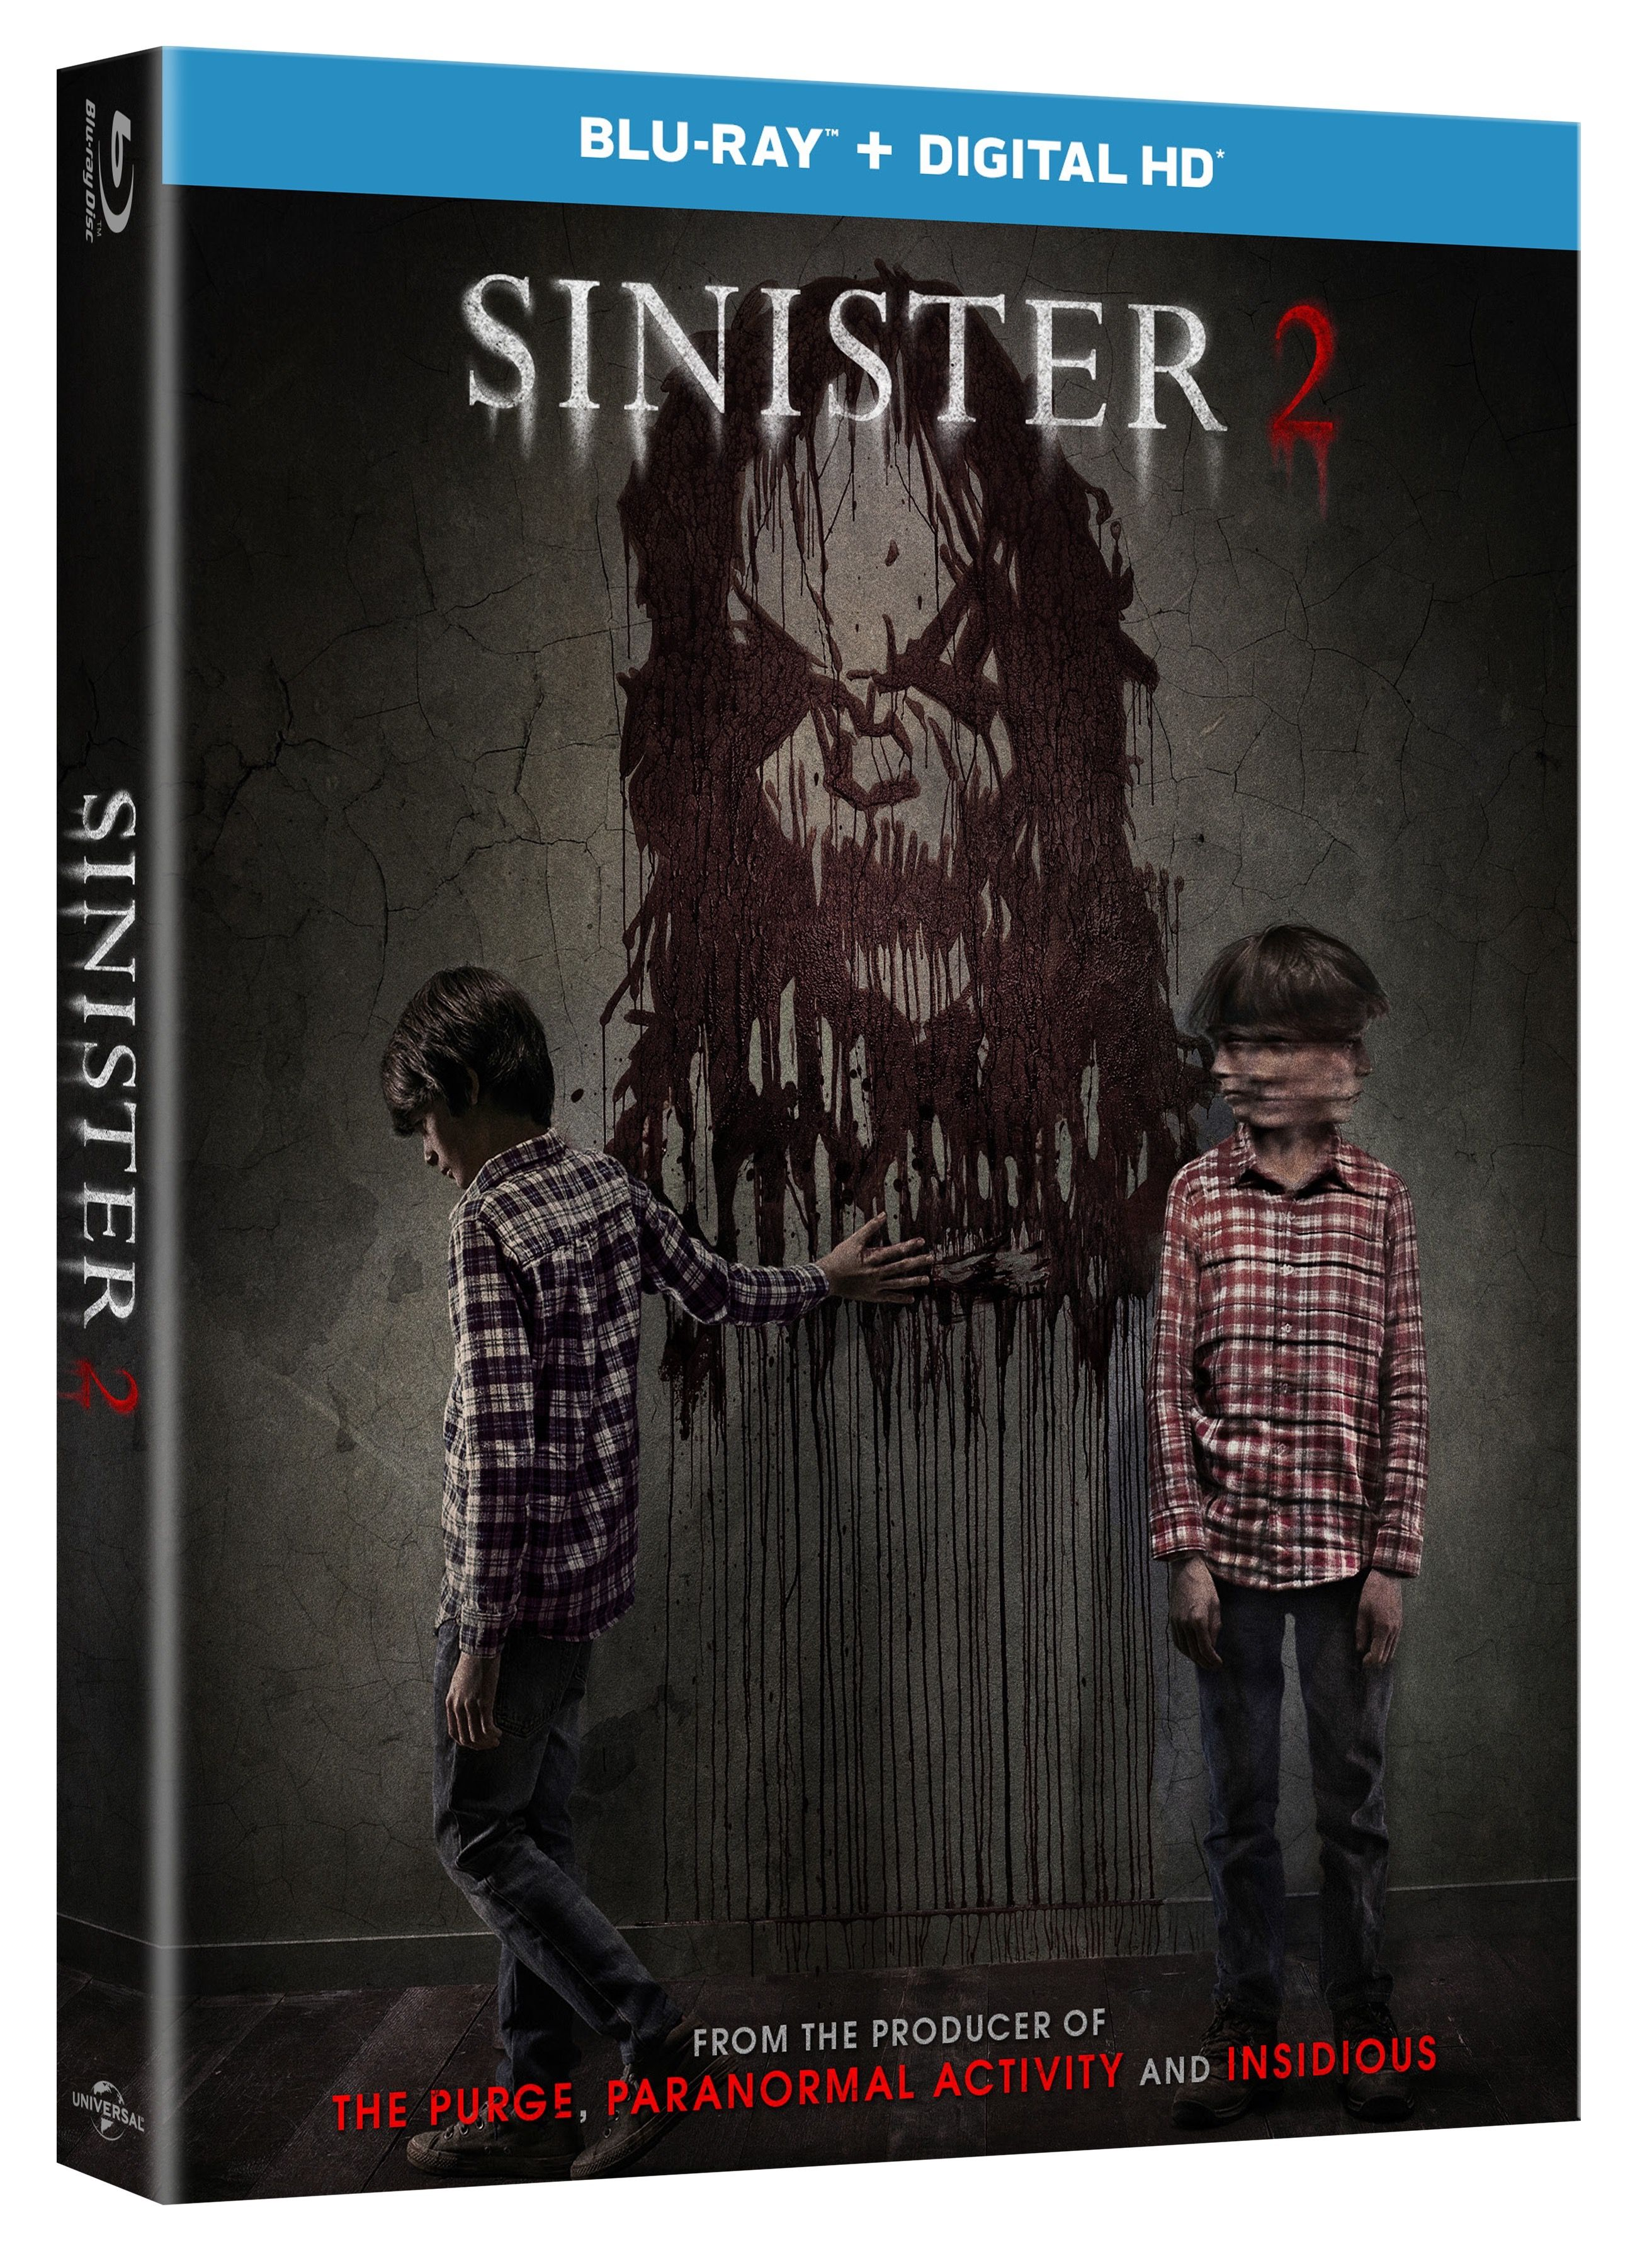 Sinister 2, available now on Digital HD, will be out on